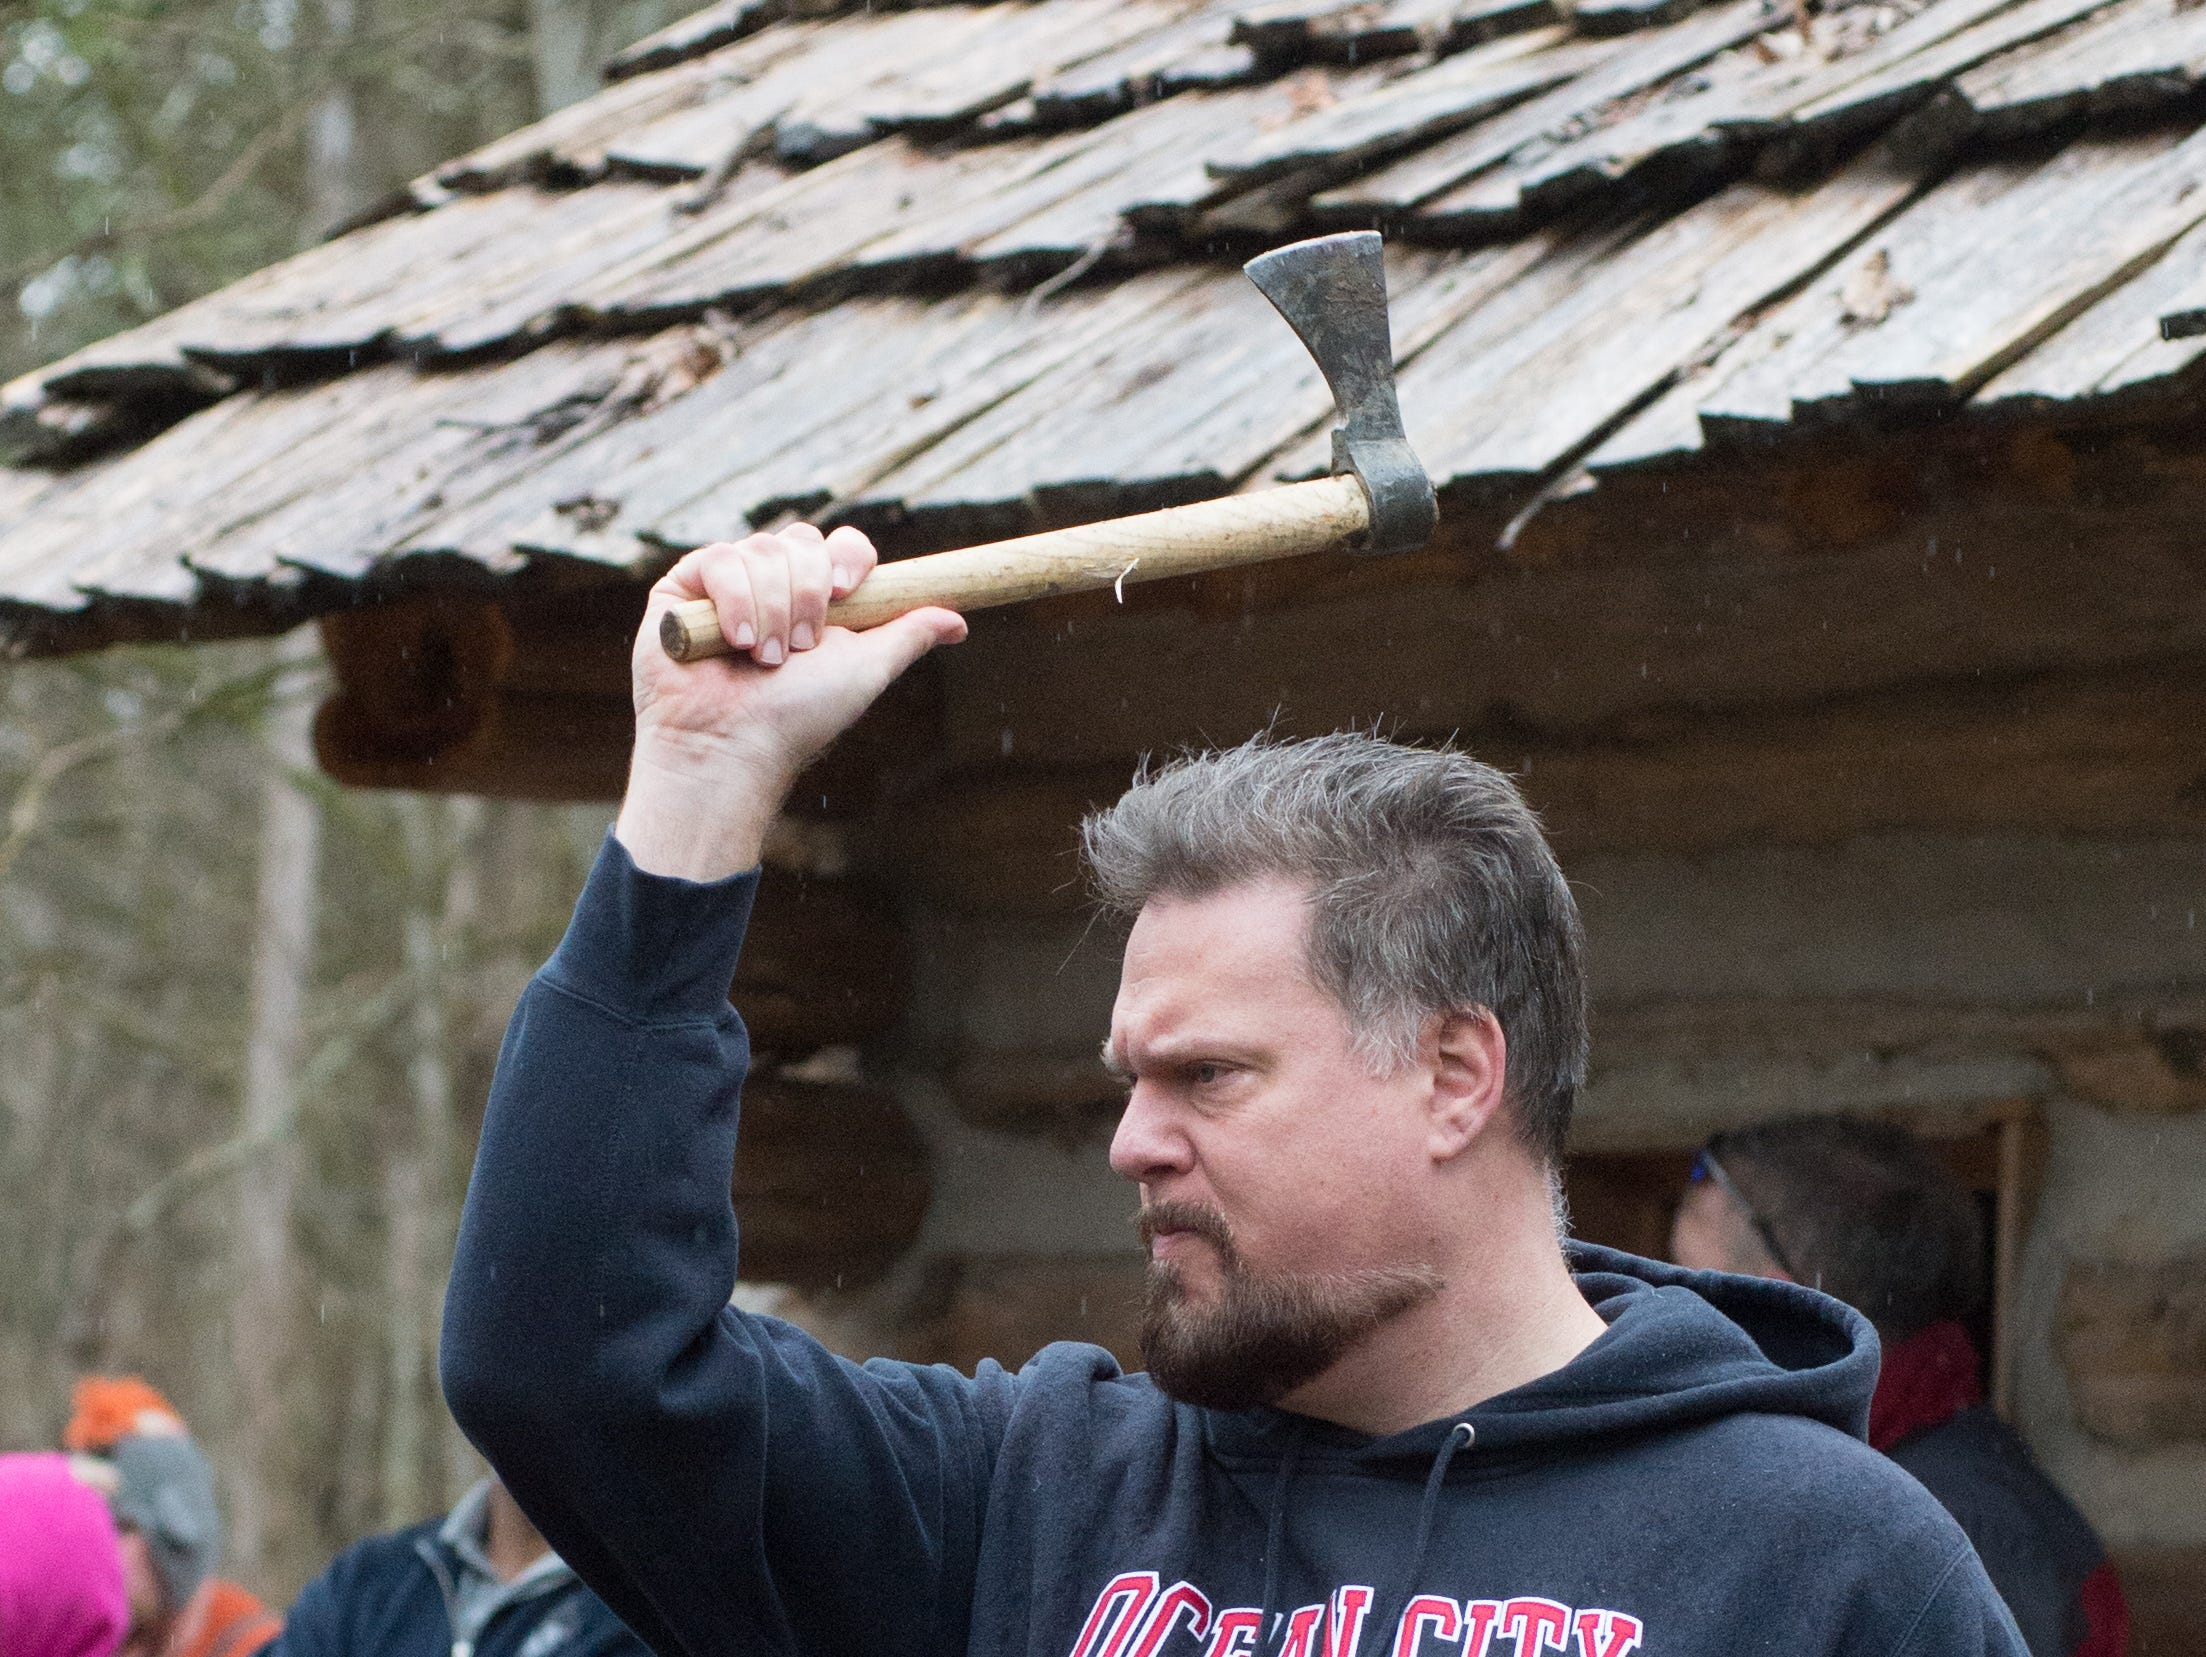 Ron Oestreicher enjoys a Tomahawk Throwing for Beginners event hosted by Middle Tennessee History Coalition at Bledsoe Creek State Park on Saturday, Jan. 12.